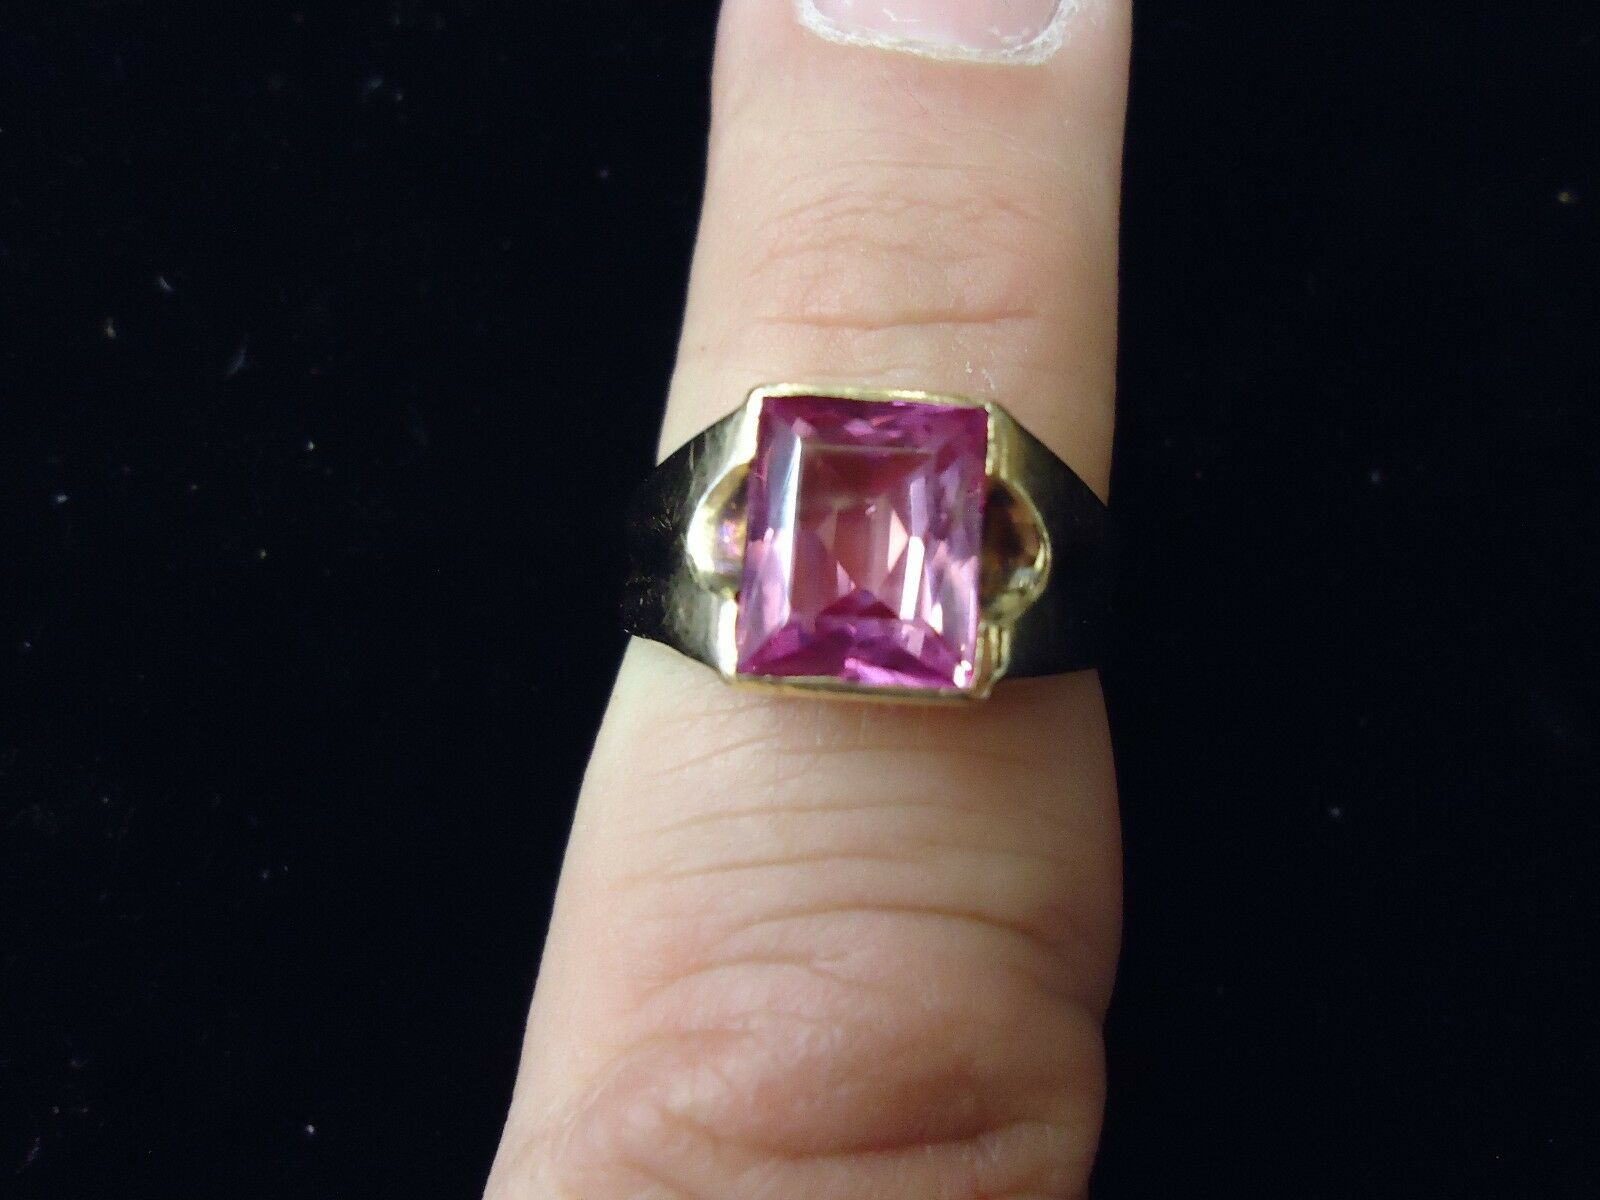 10 KT YELLOW gold MANS RING WITH PINK STONE SIZE 9